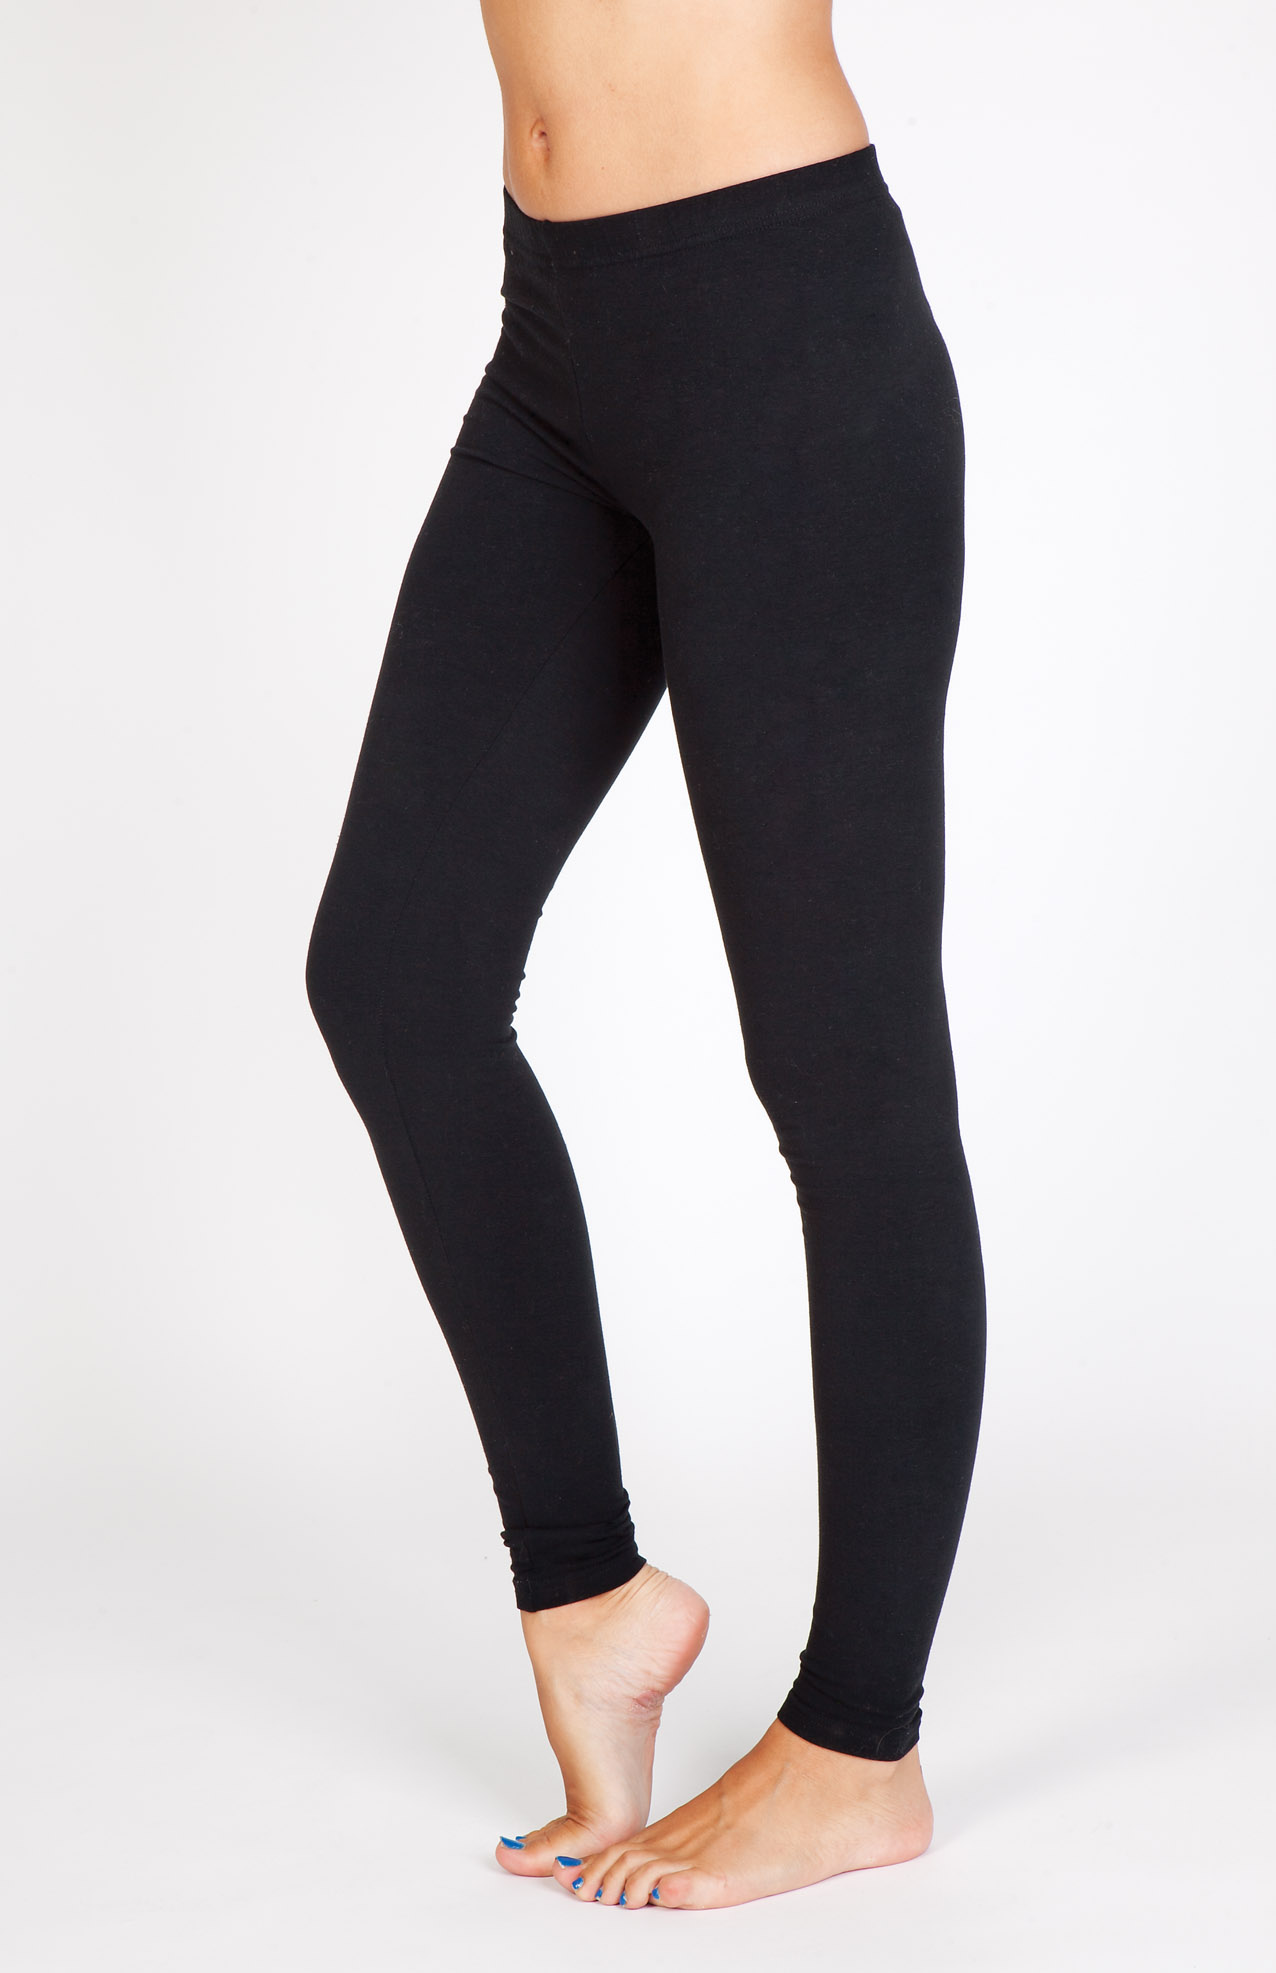 Ladies Spandex Full Length Legging